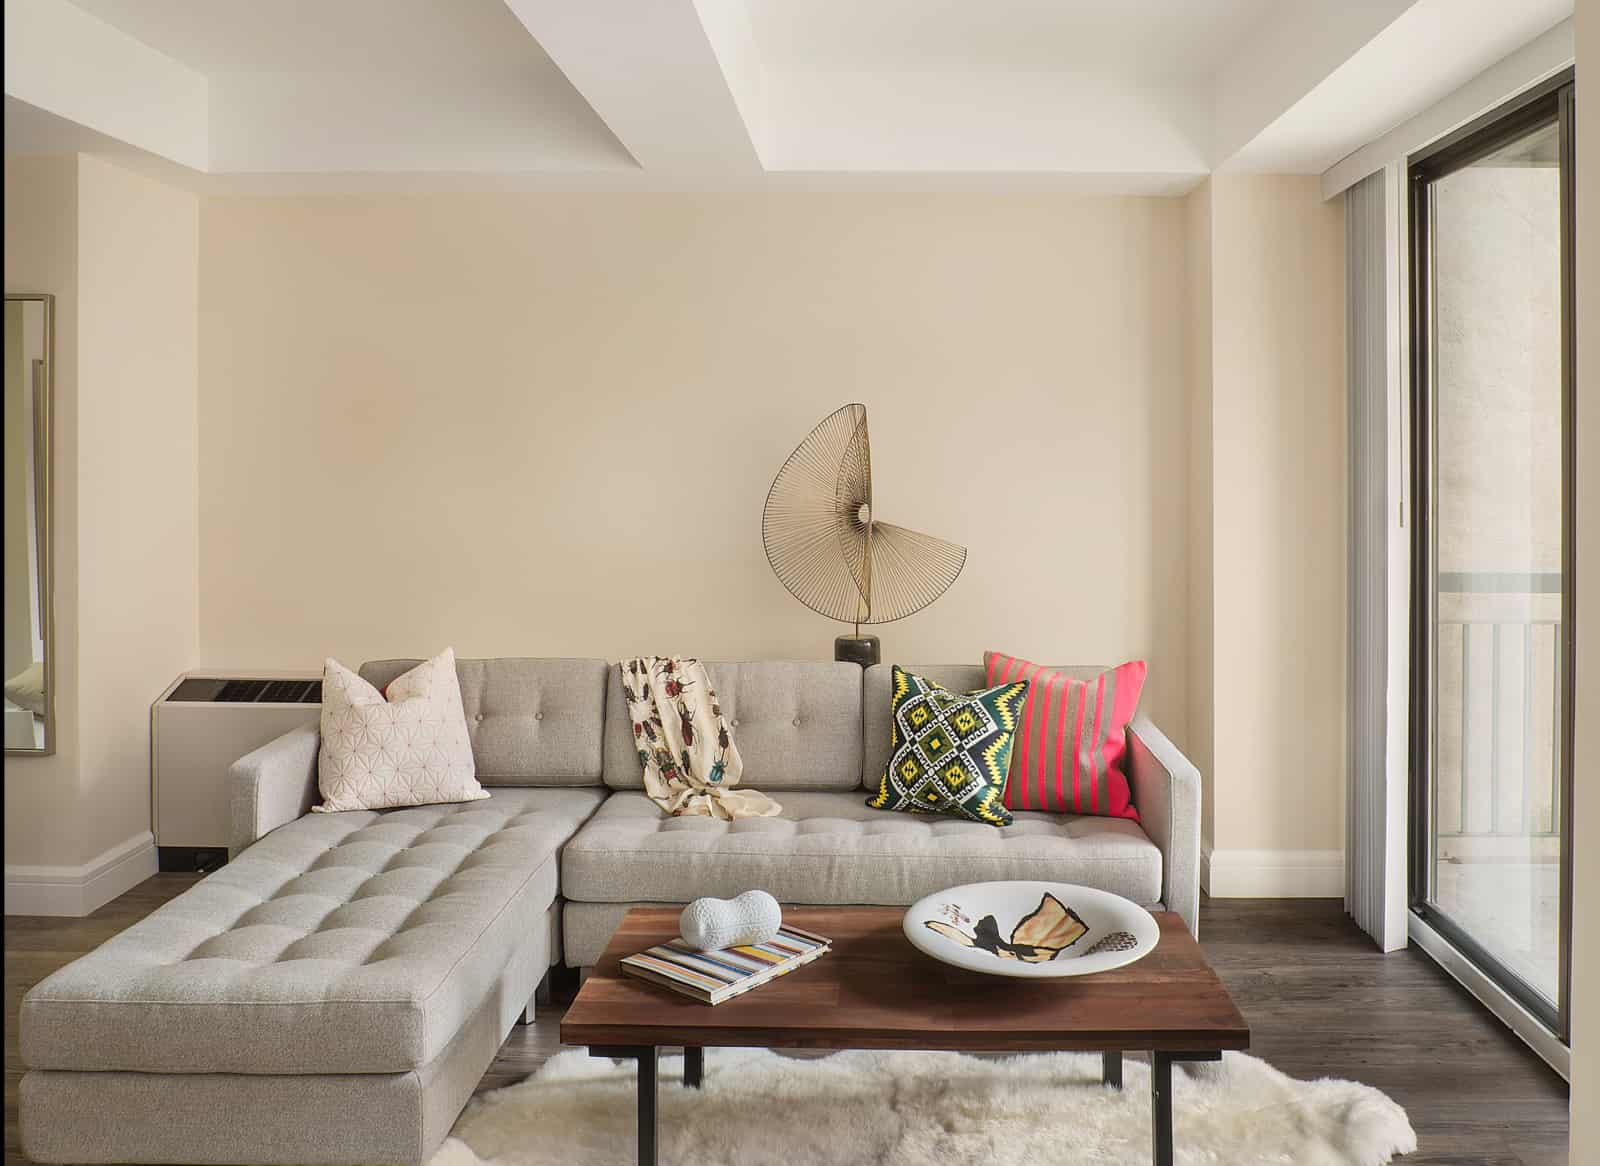 Interior of apartment living room with modern couch and coffee table.